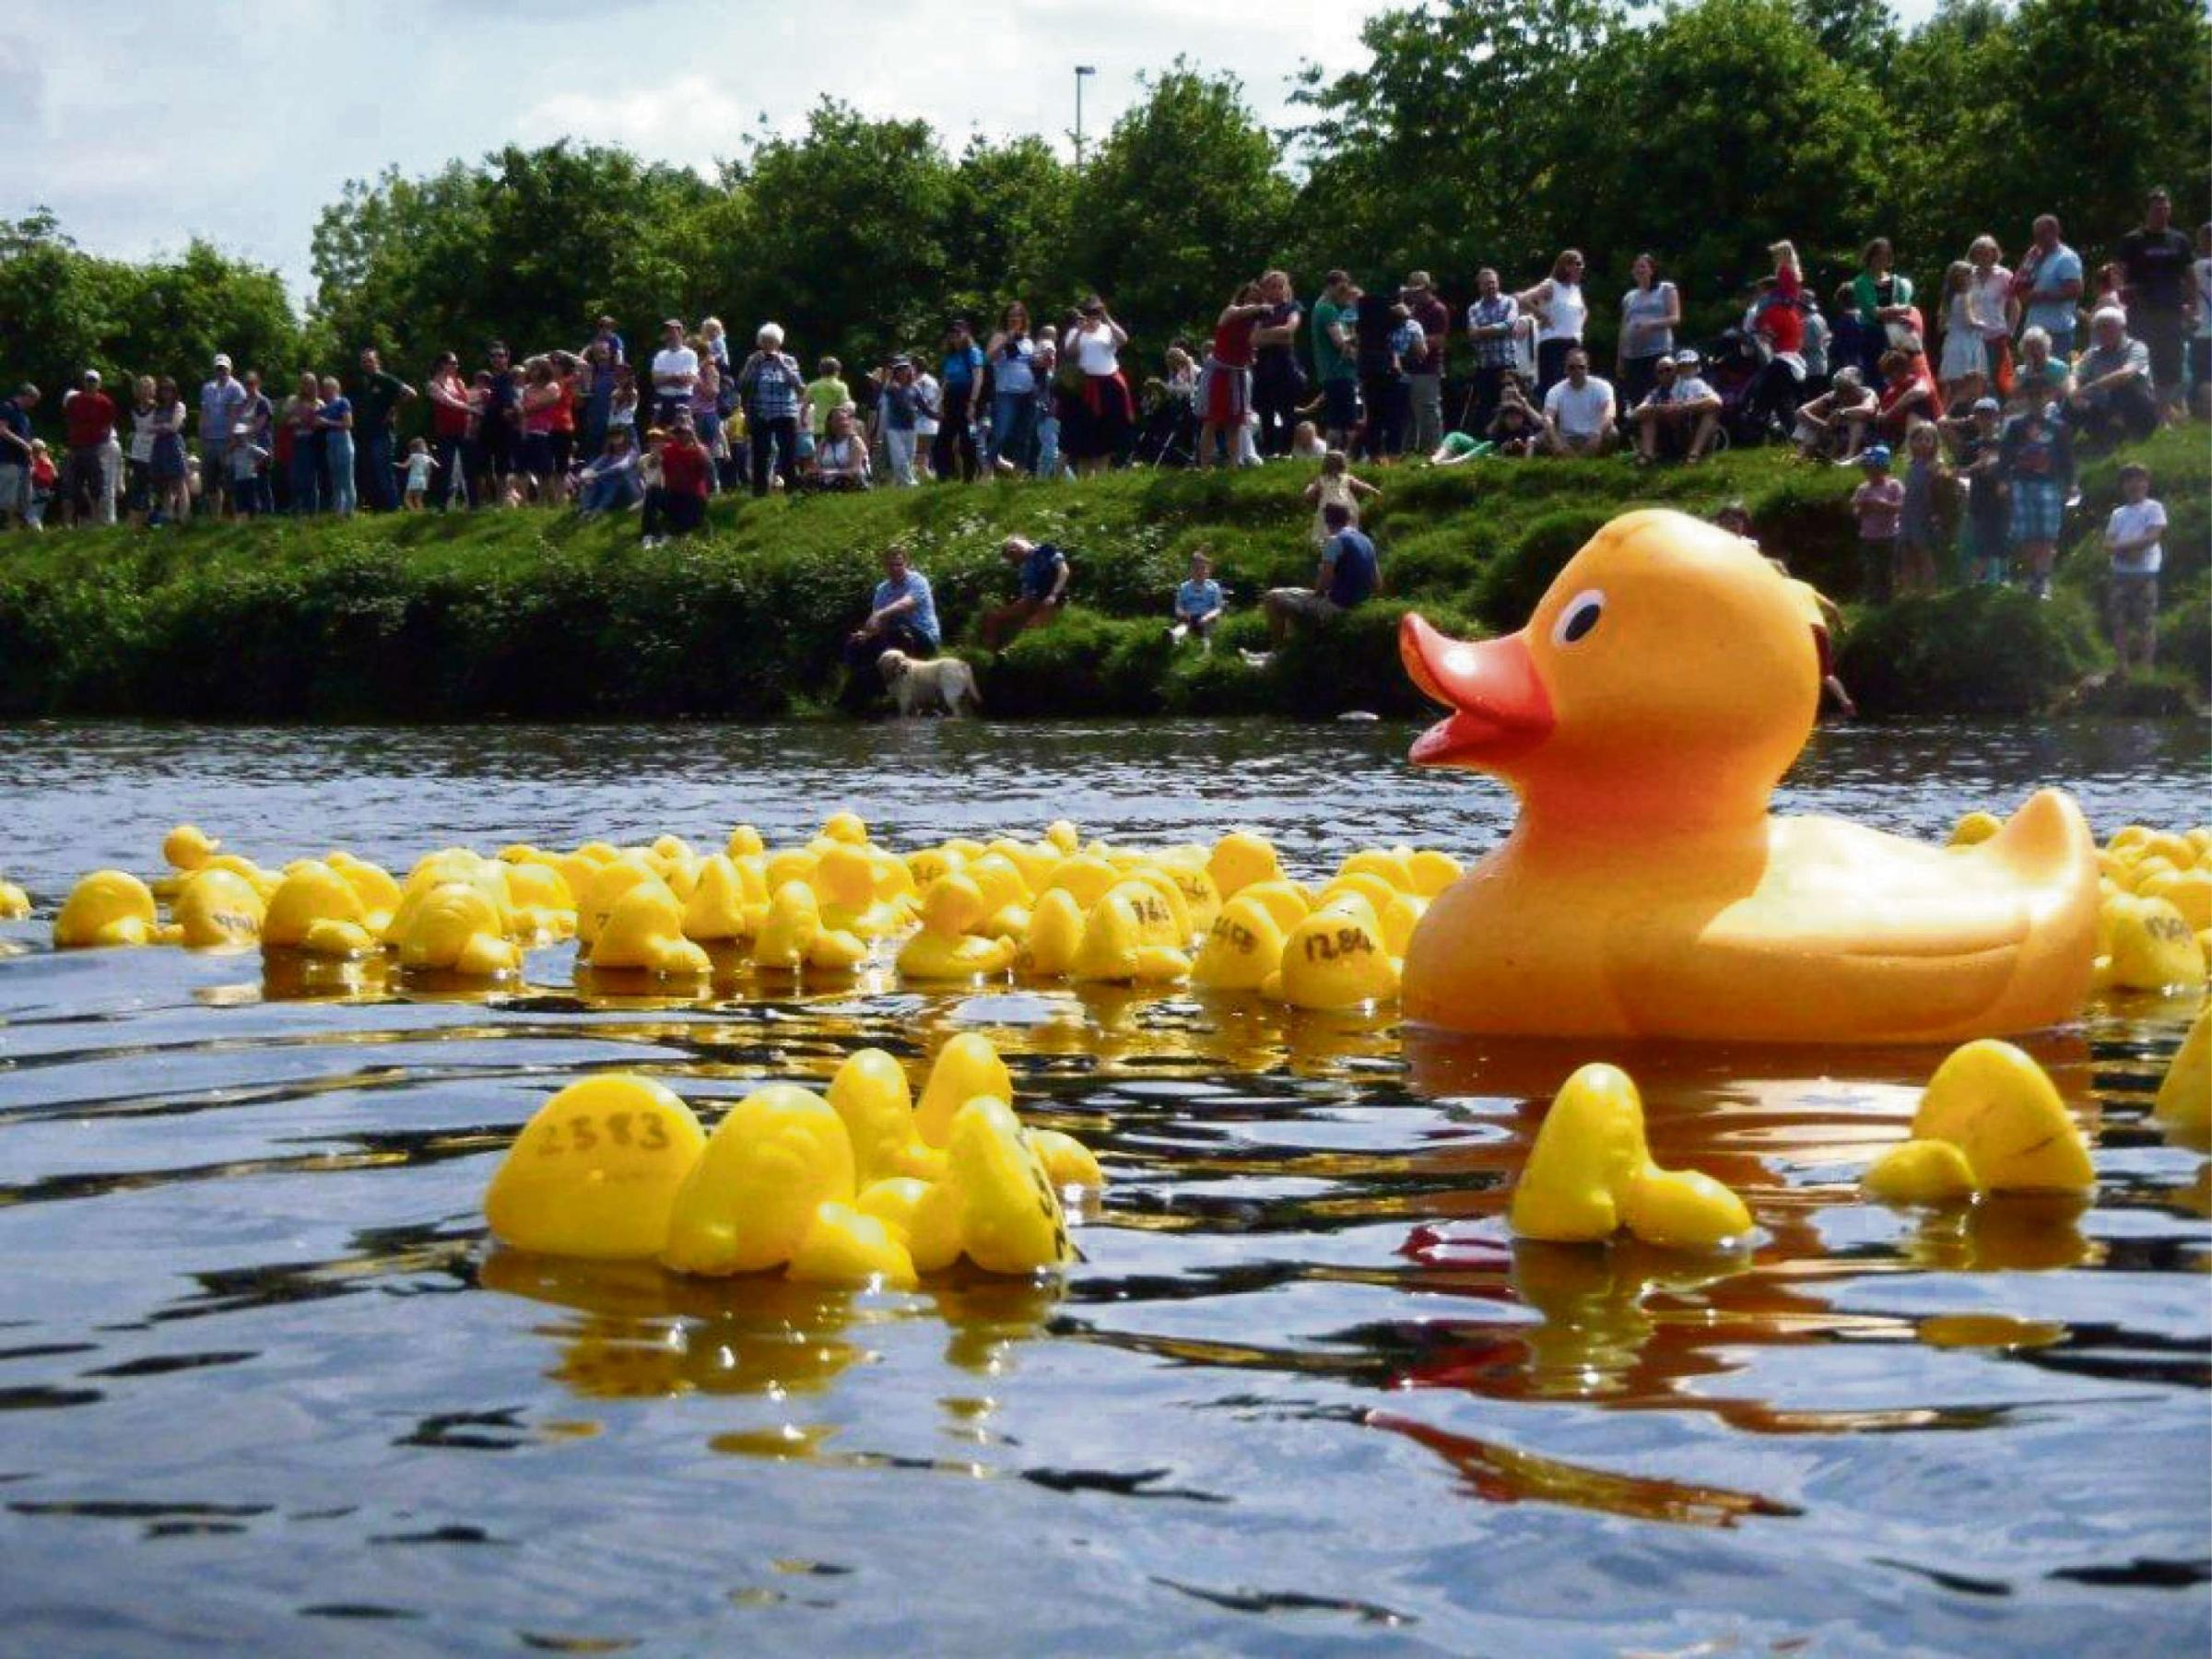 Ducks race for a record